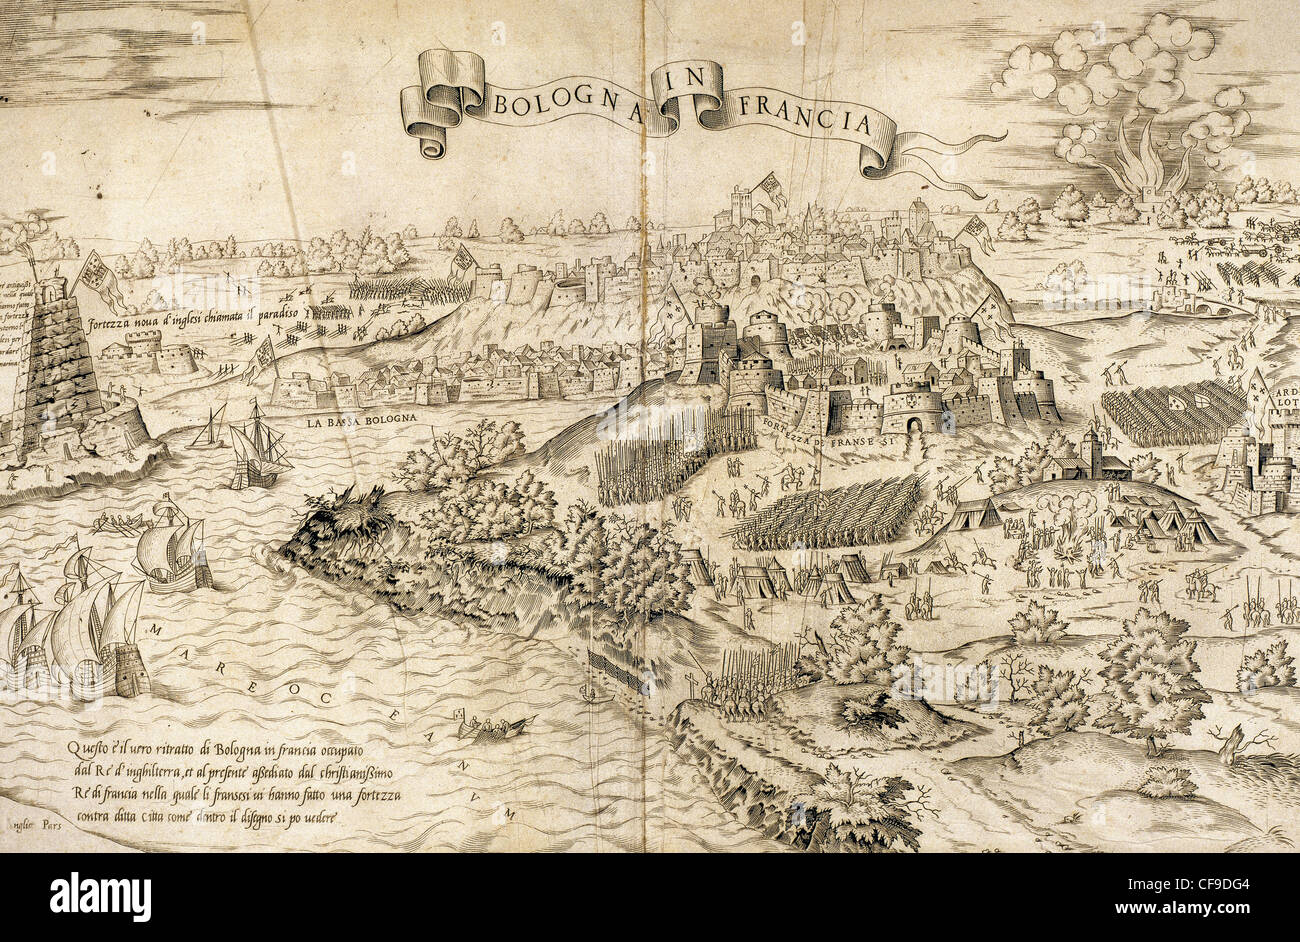 Italian War of 1542-1546. Siege of Boulogne (1544) during king Henry VIII  of England's third invasion of France.